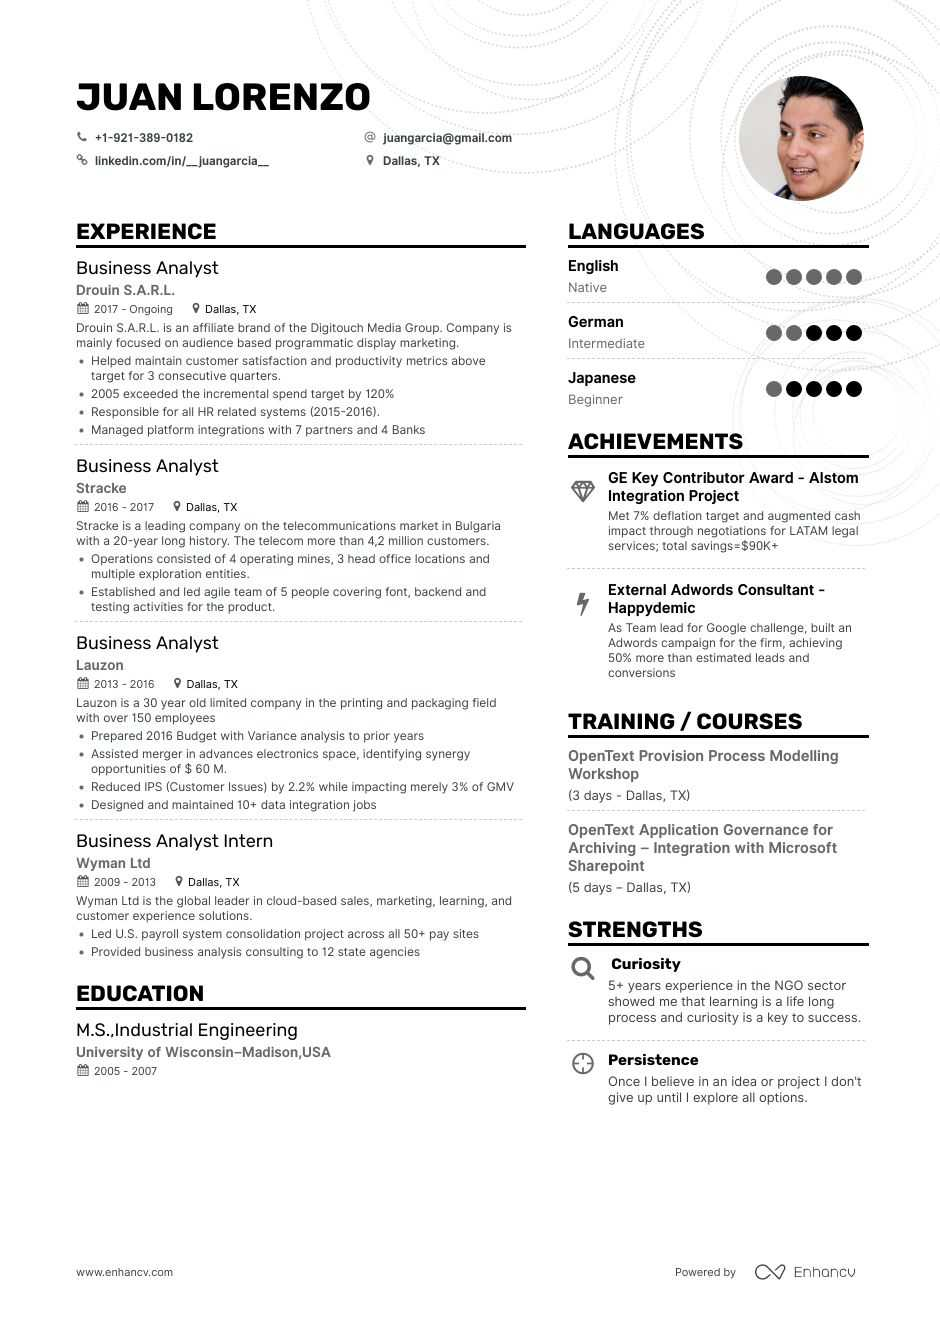 the best business analyst resume examples skills to get you hired profile summary for Resume Resume Profile Summary For Business Analyst